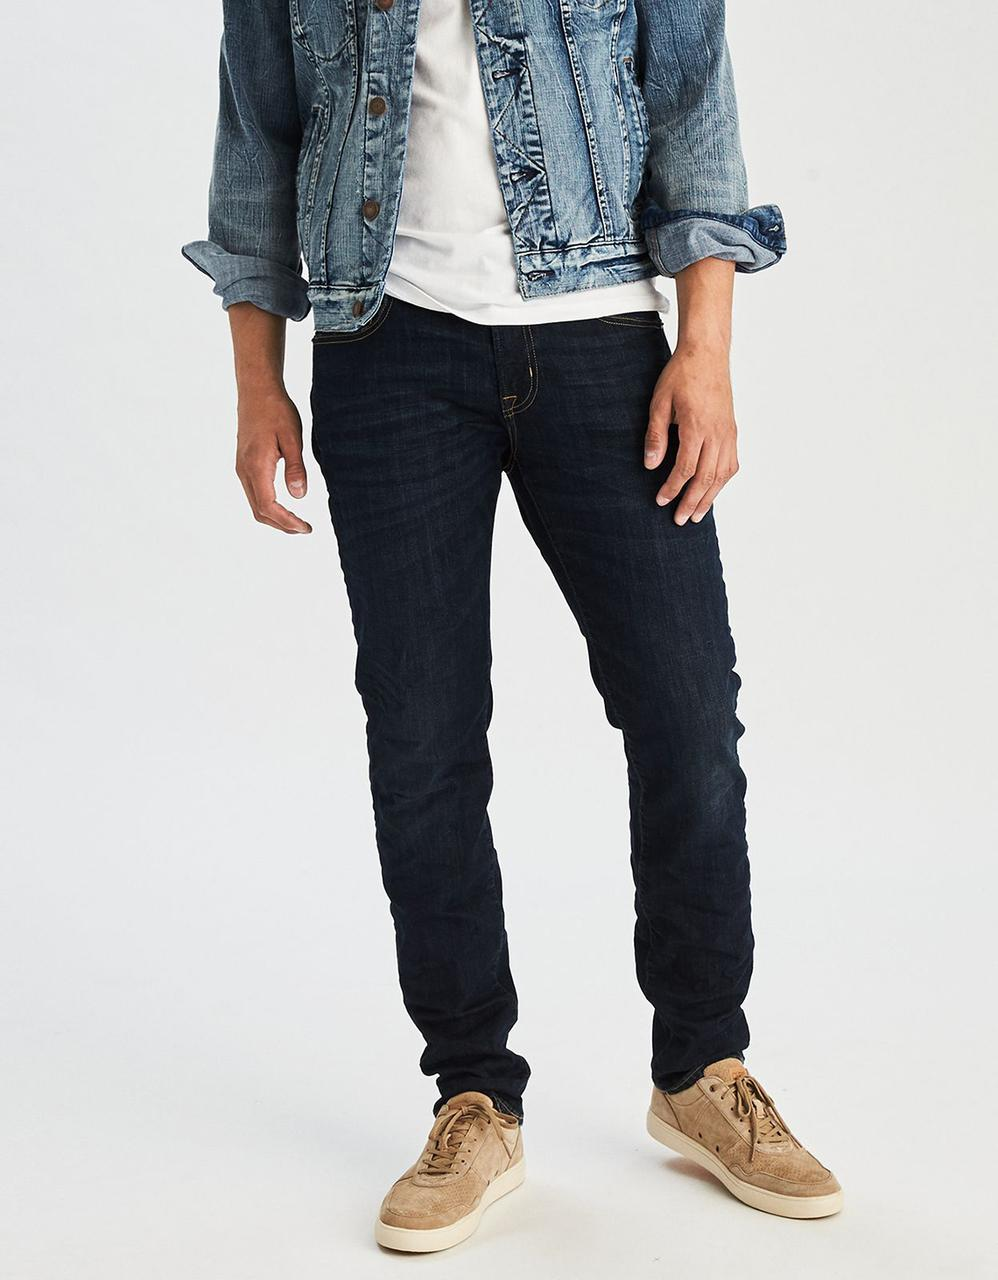 8674415f7f753 American Eagle Jeans, AE Extreme Flex Slim Straight Jean for Men at ...